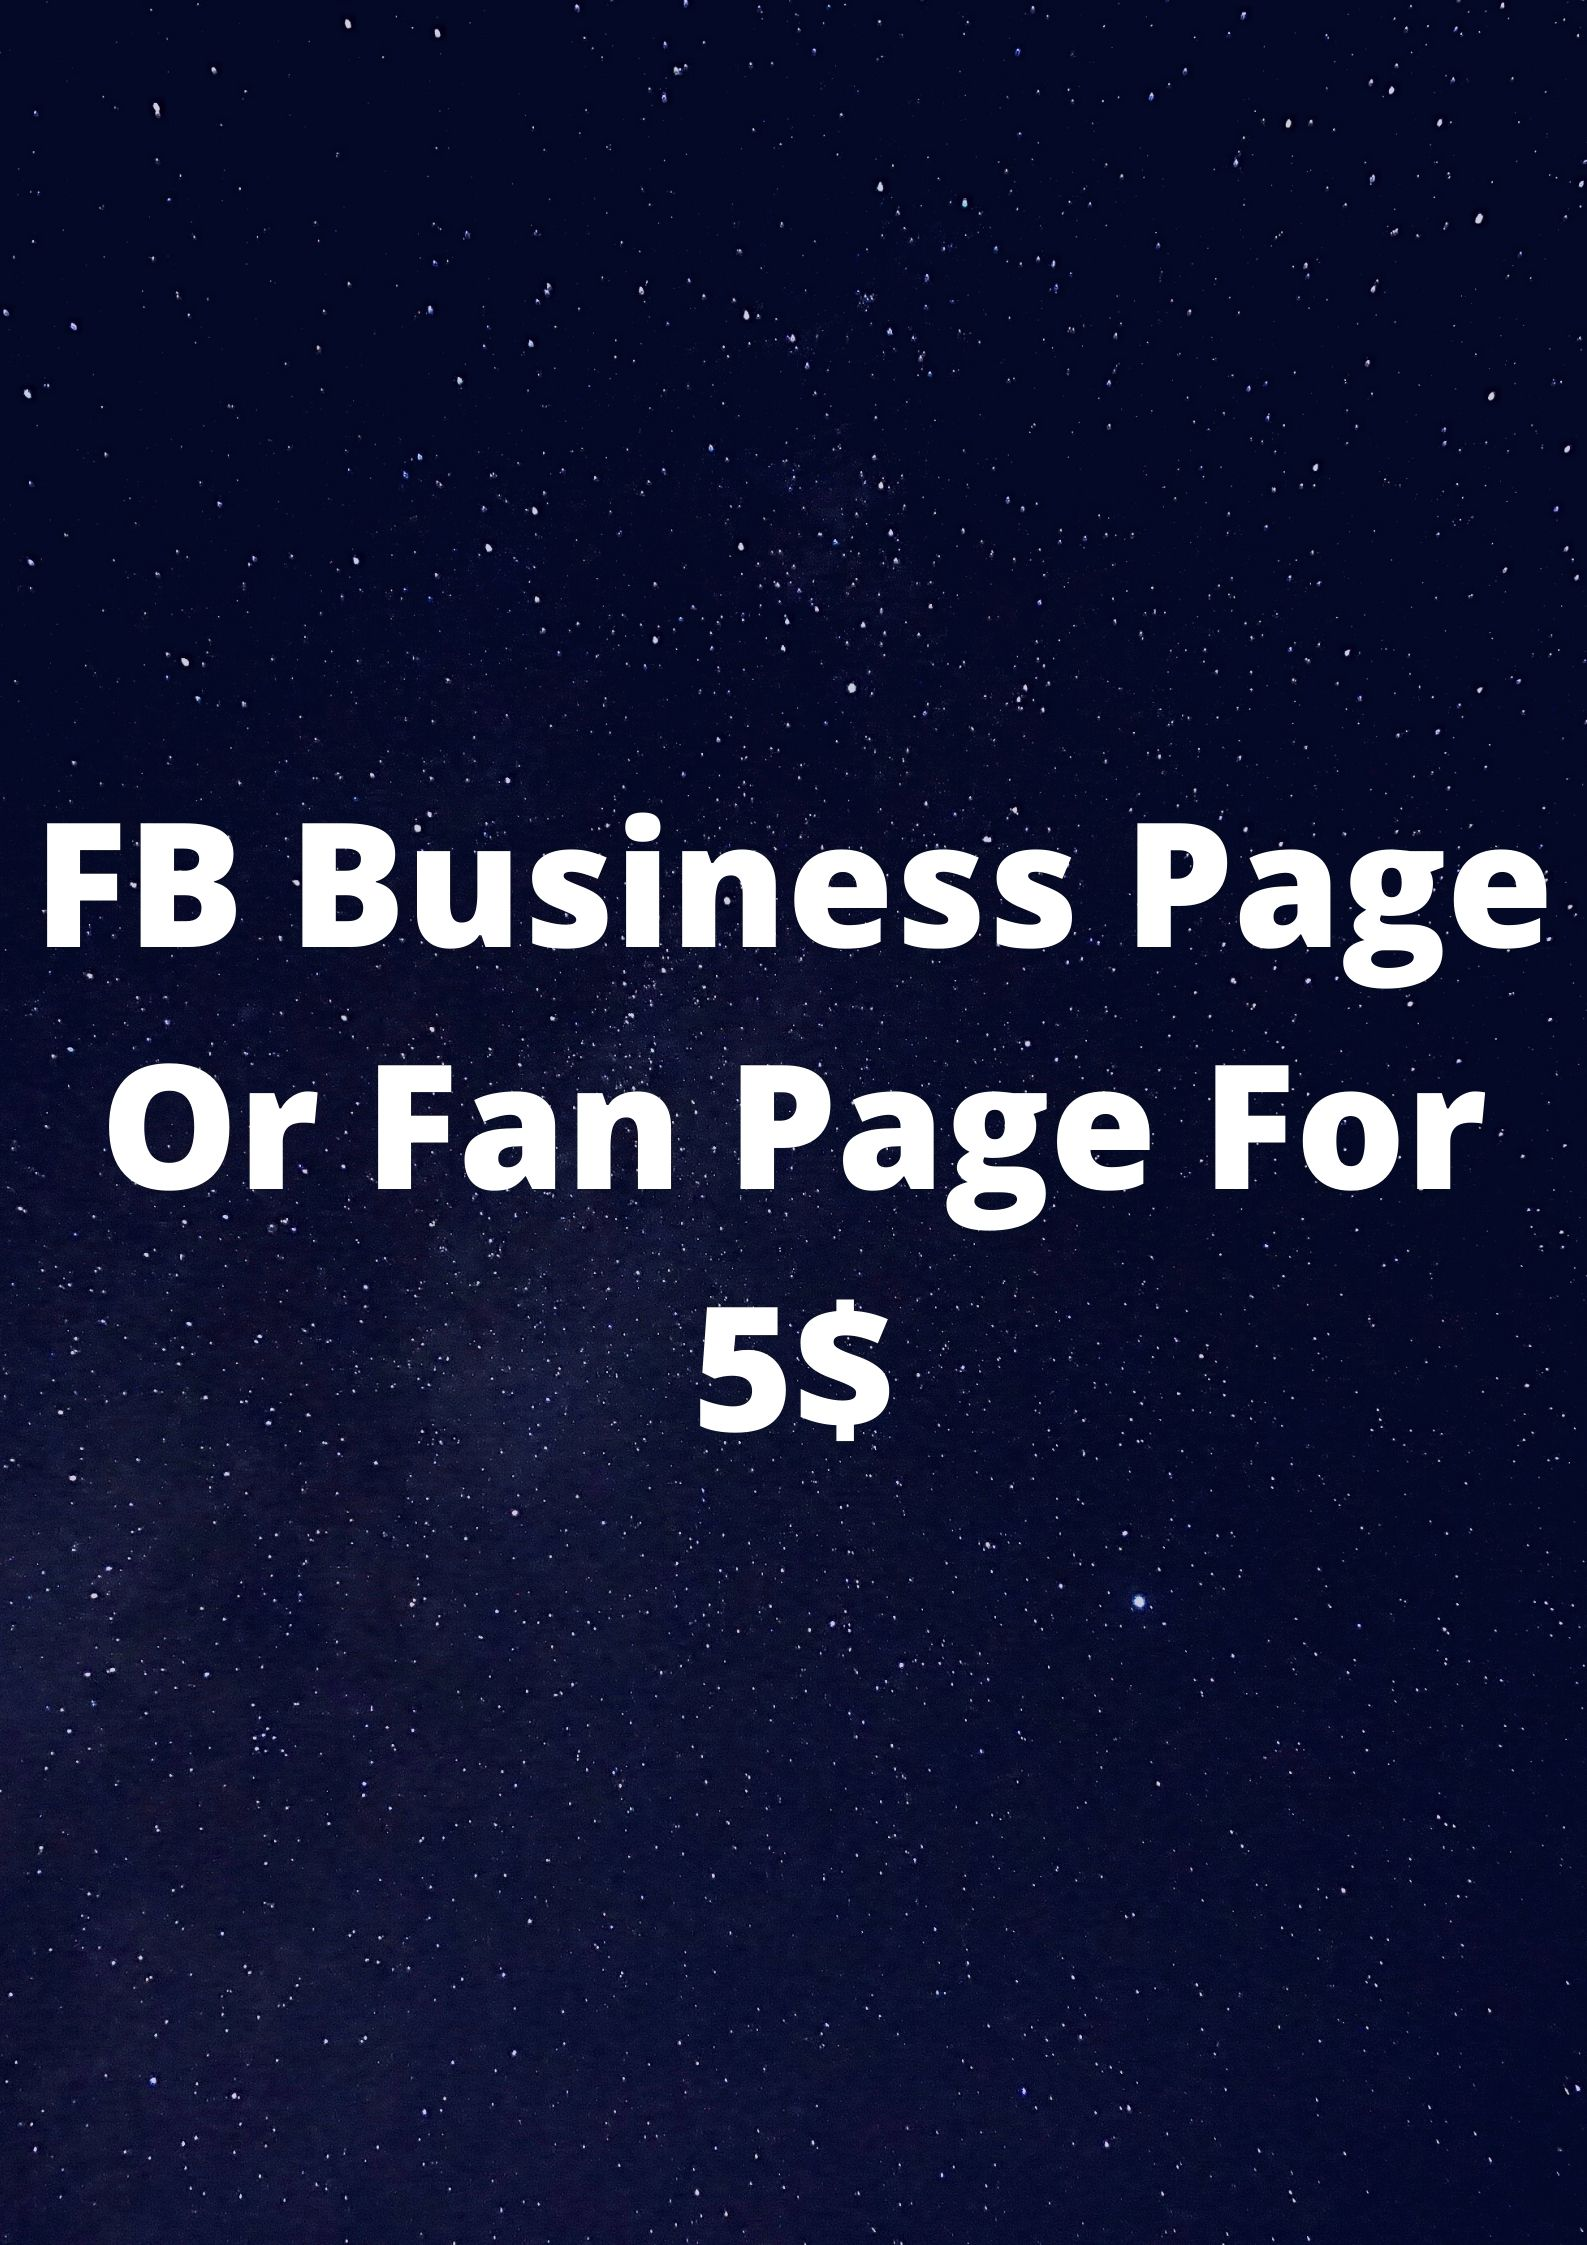 I will generate a FB page for your business